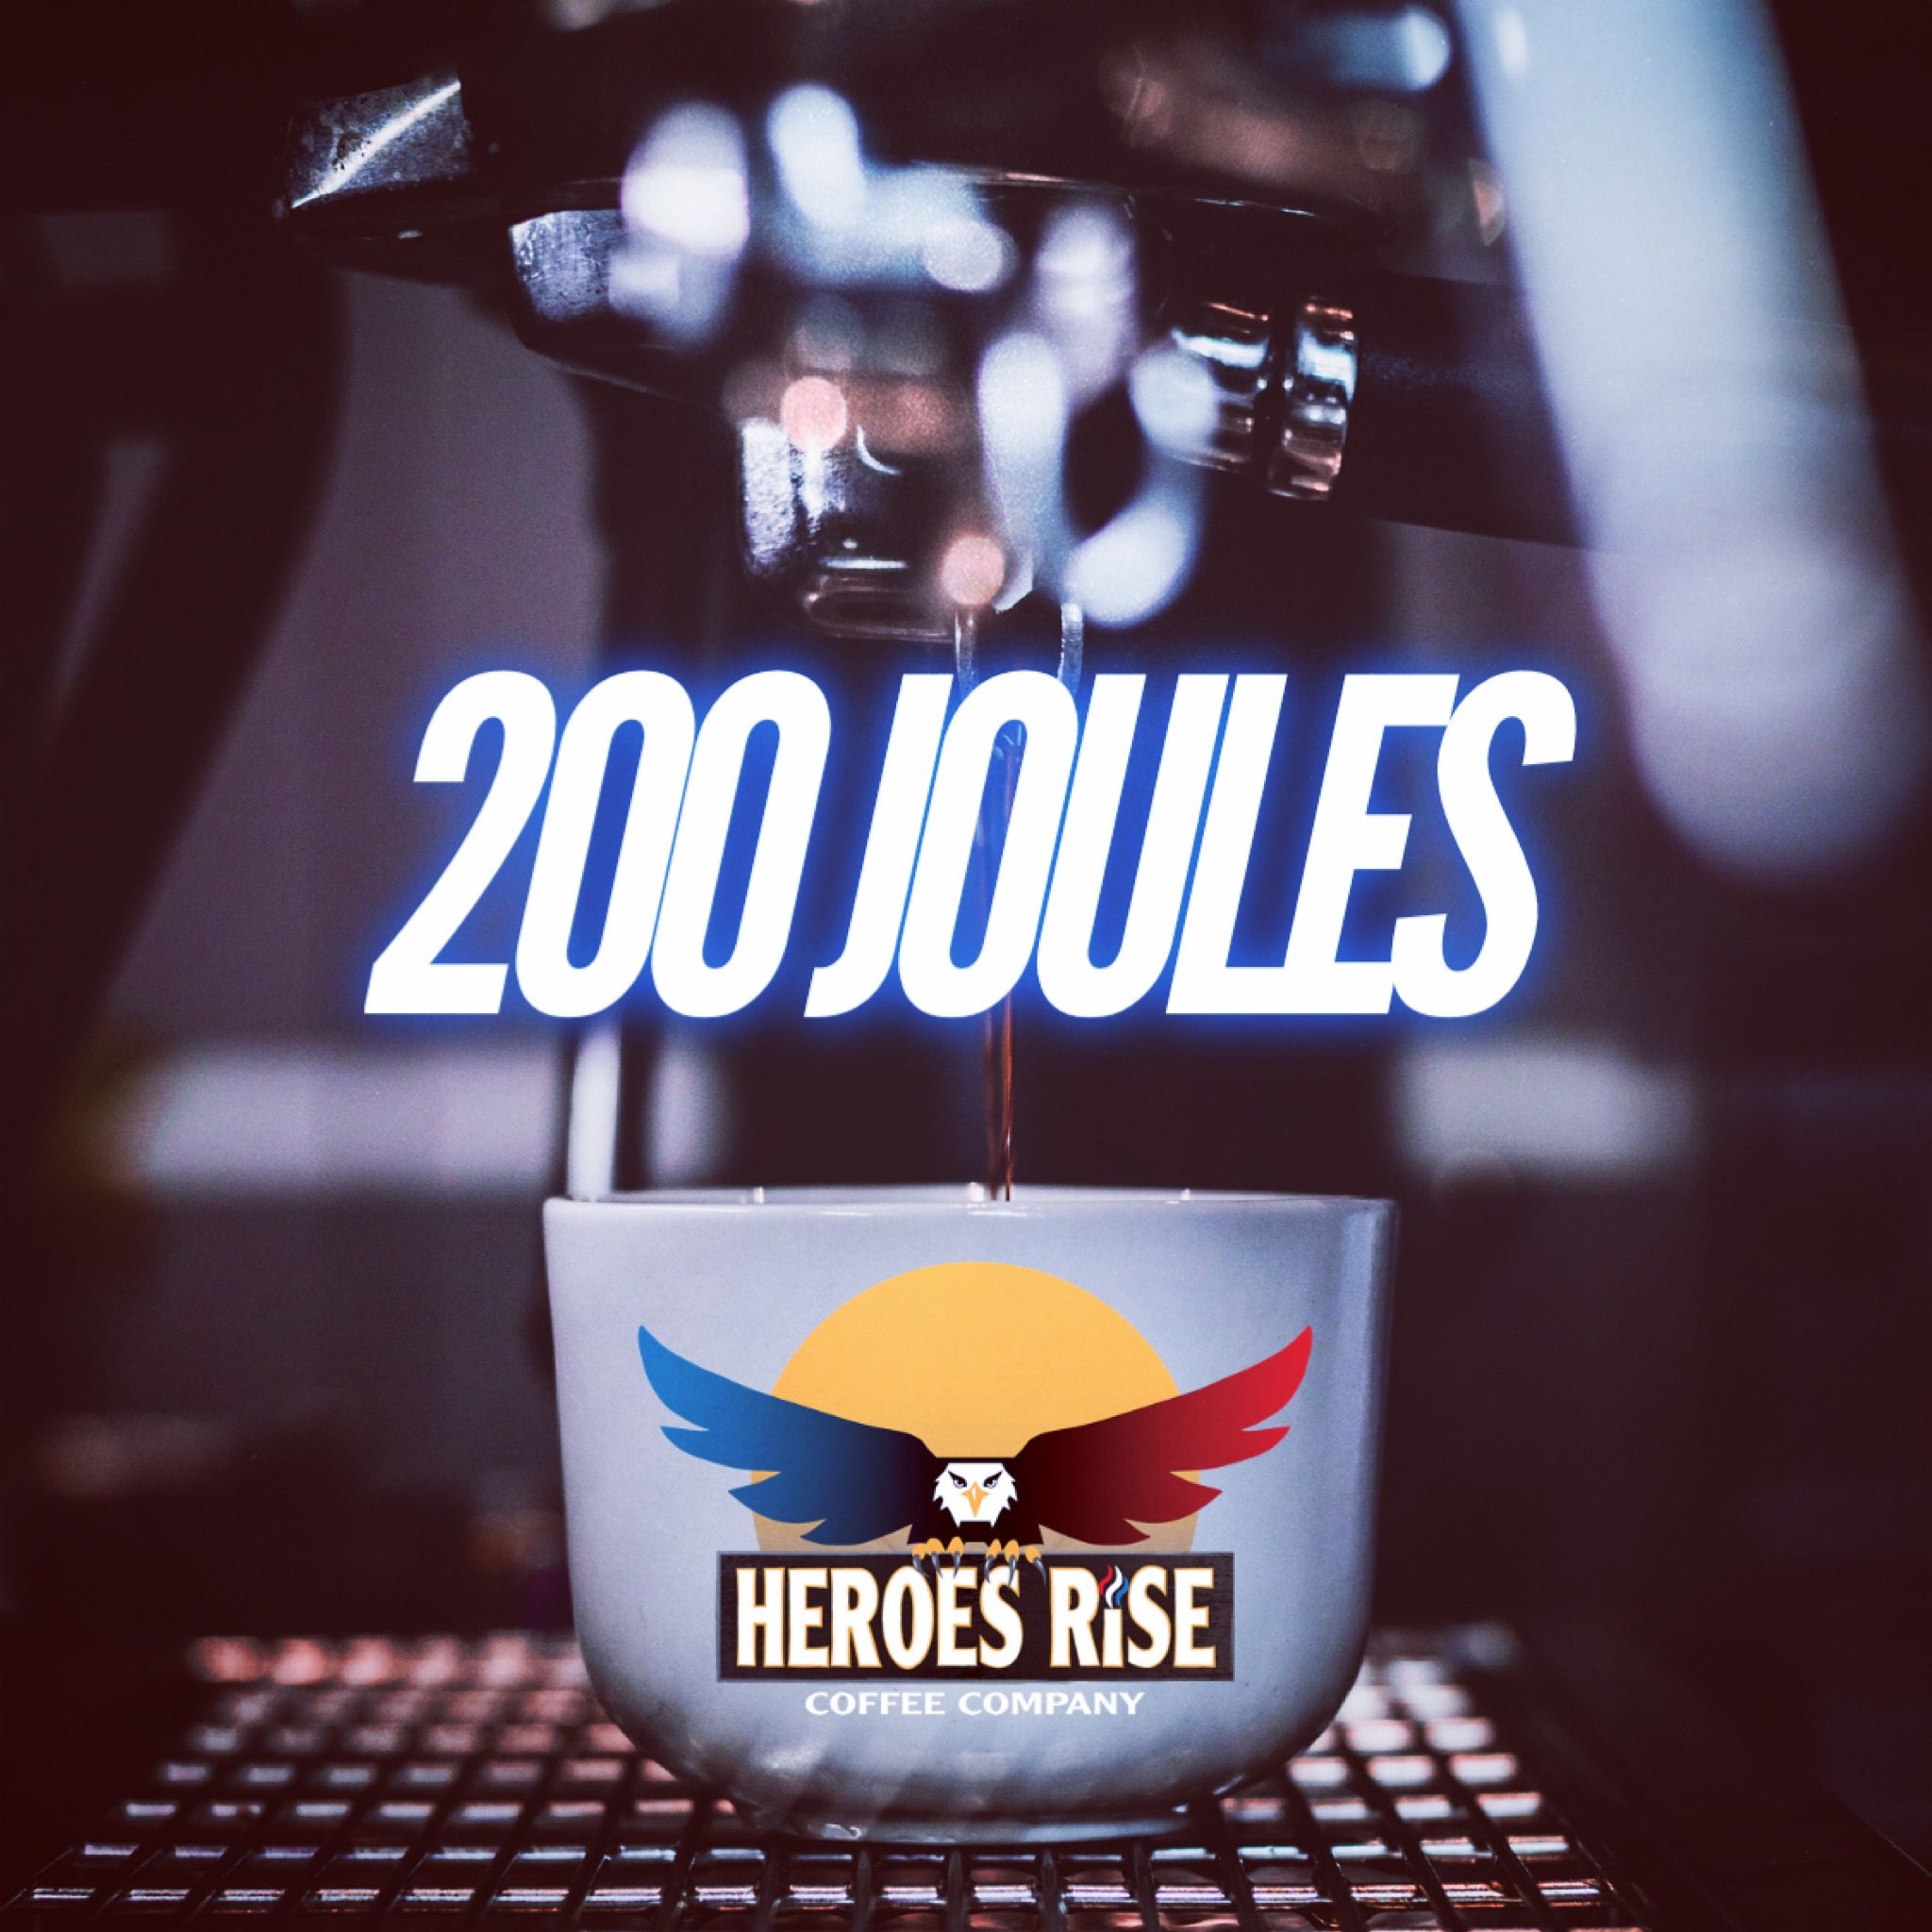 Our espresso blend is like a 200 J DEFIB! in 2020 Coffee